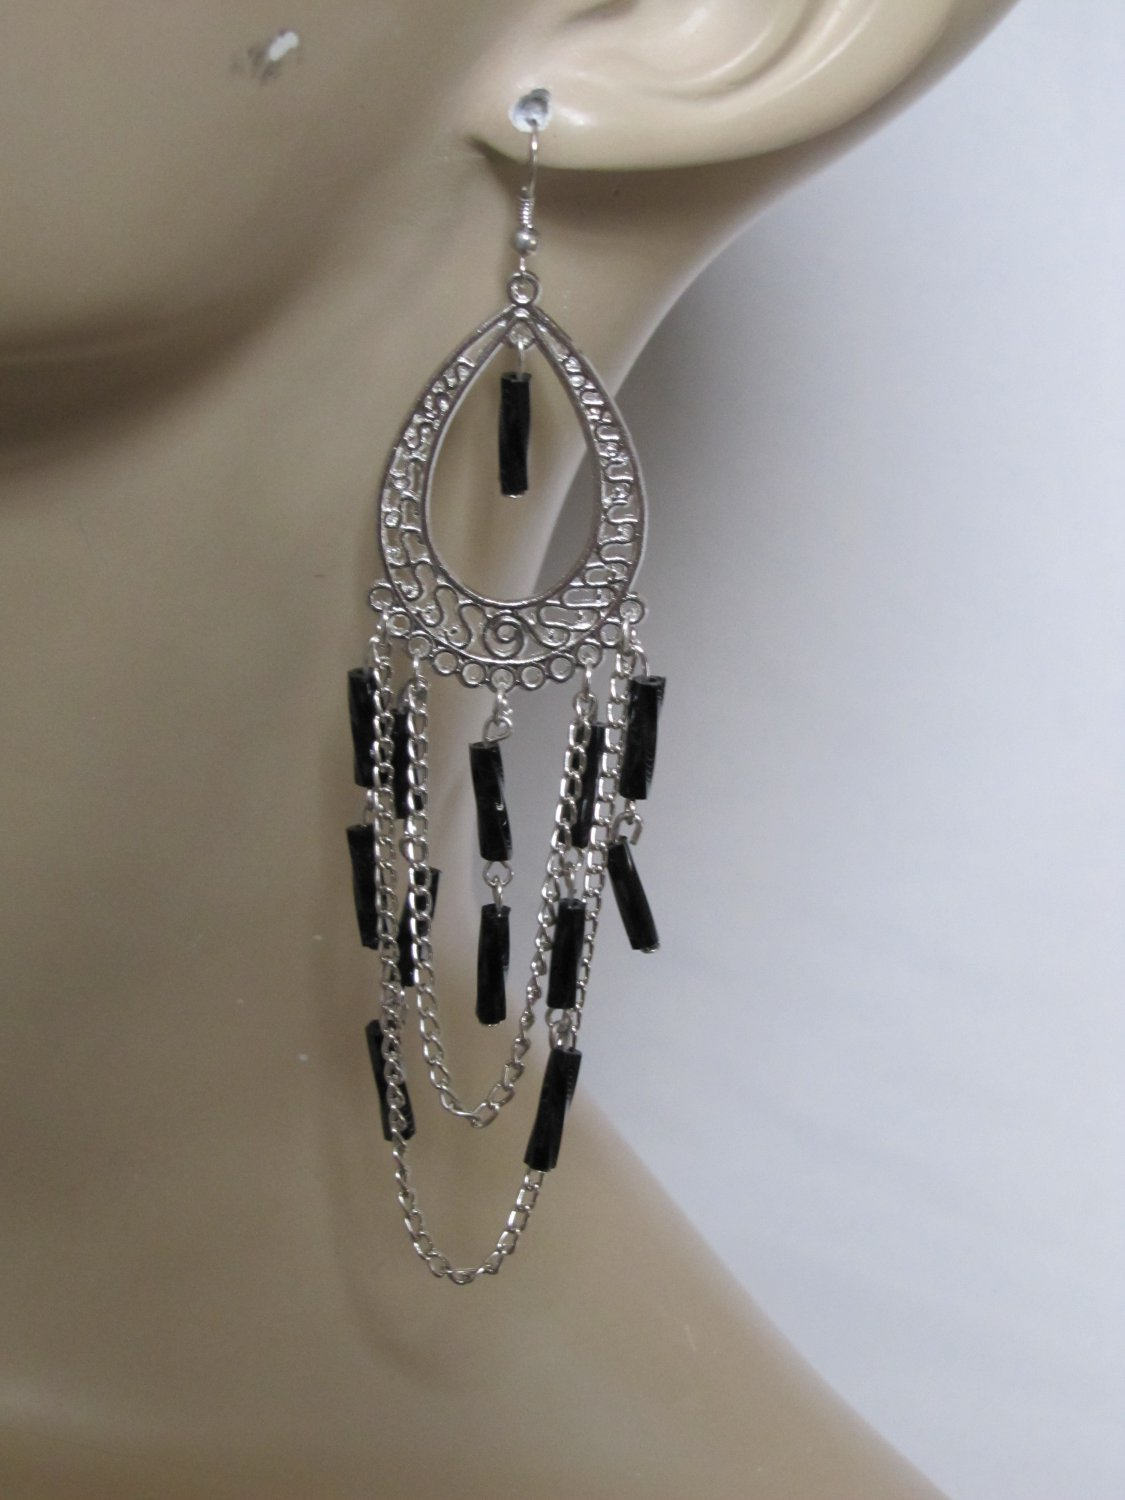 NEW CHROME TONE CHANDELIER EARRINGS WITH BLACK BEAD ACCENTS